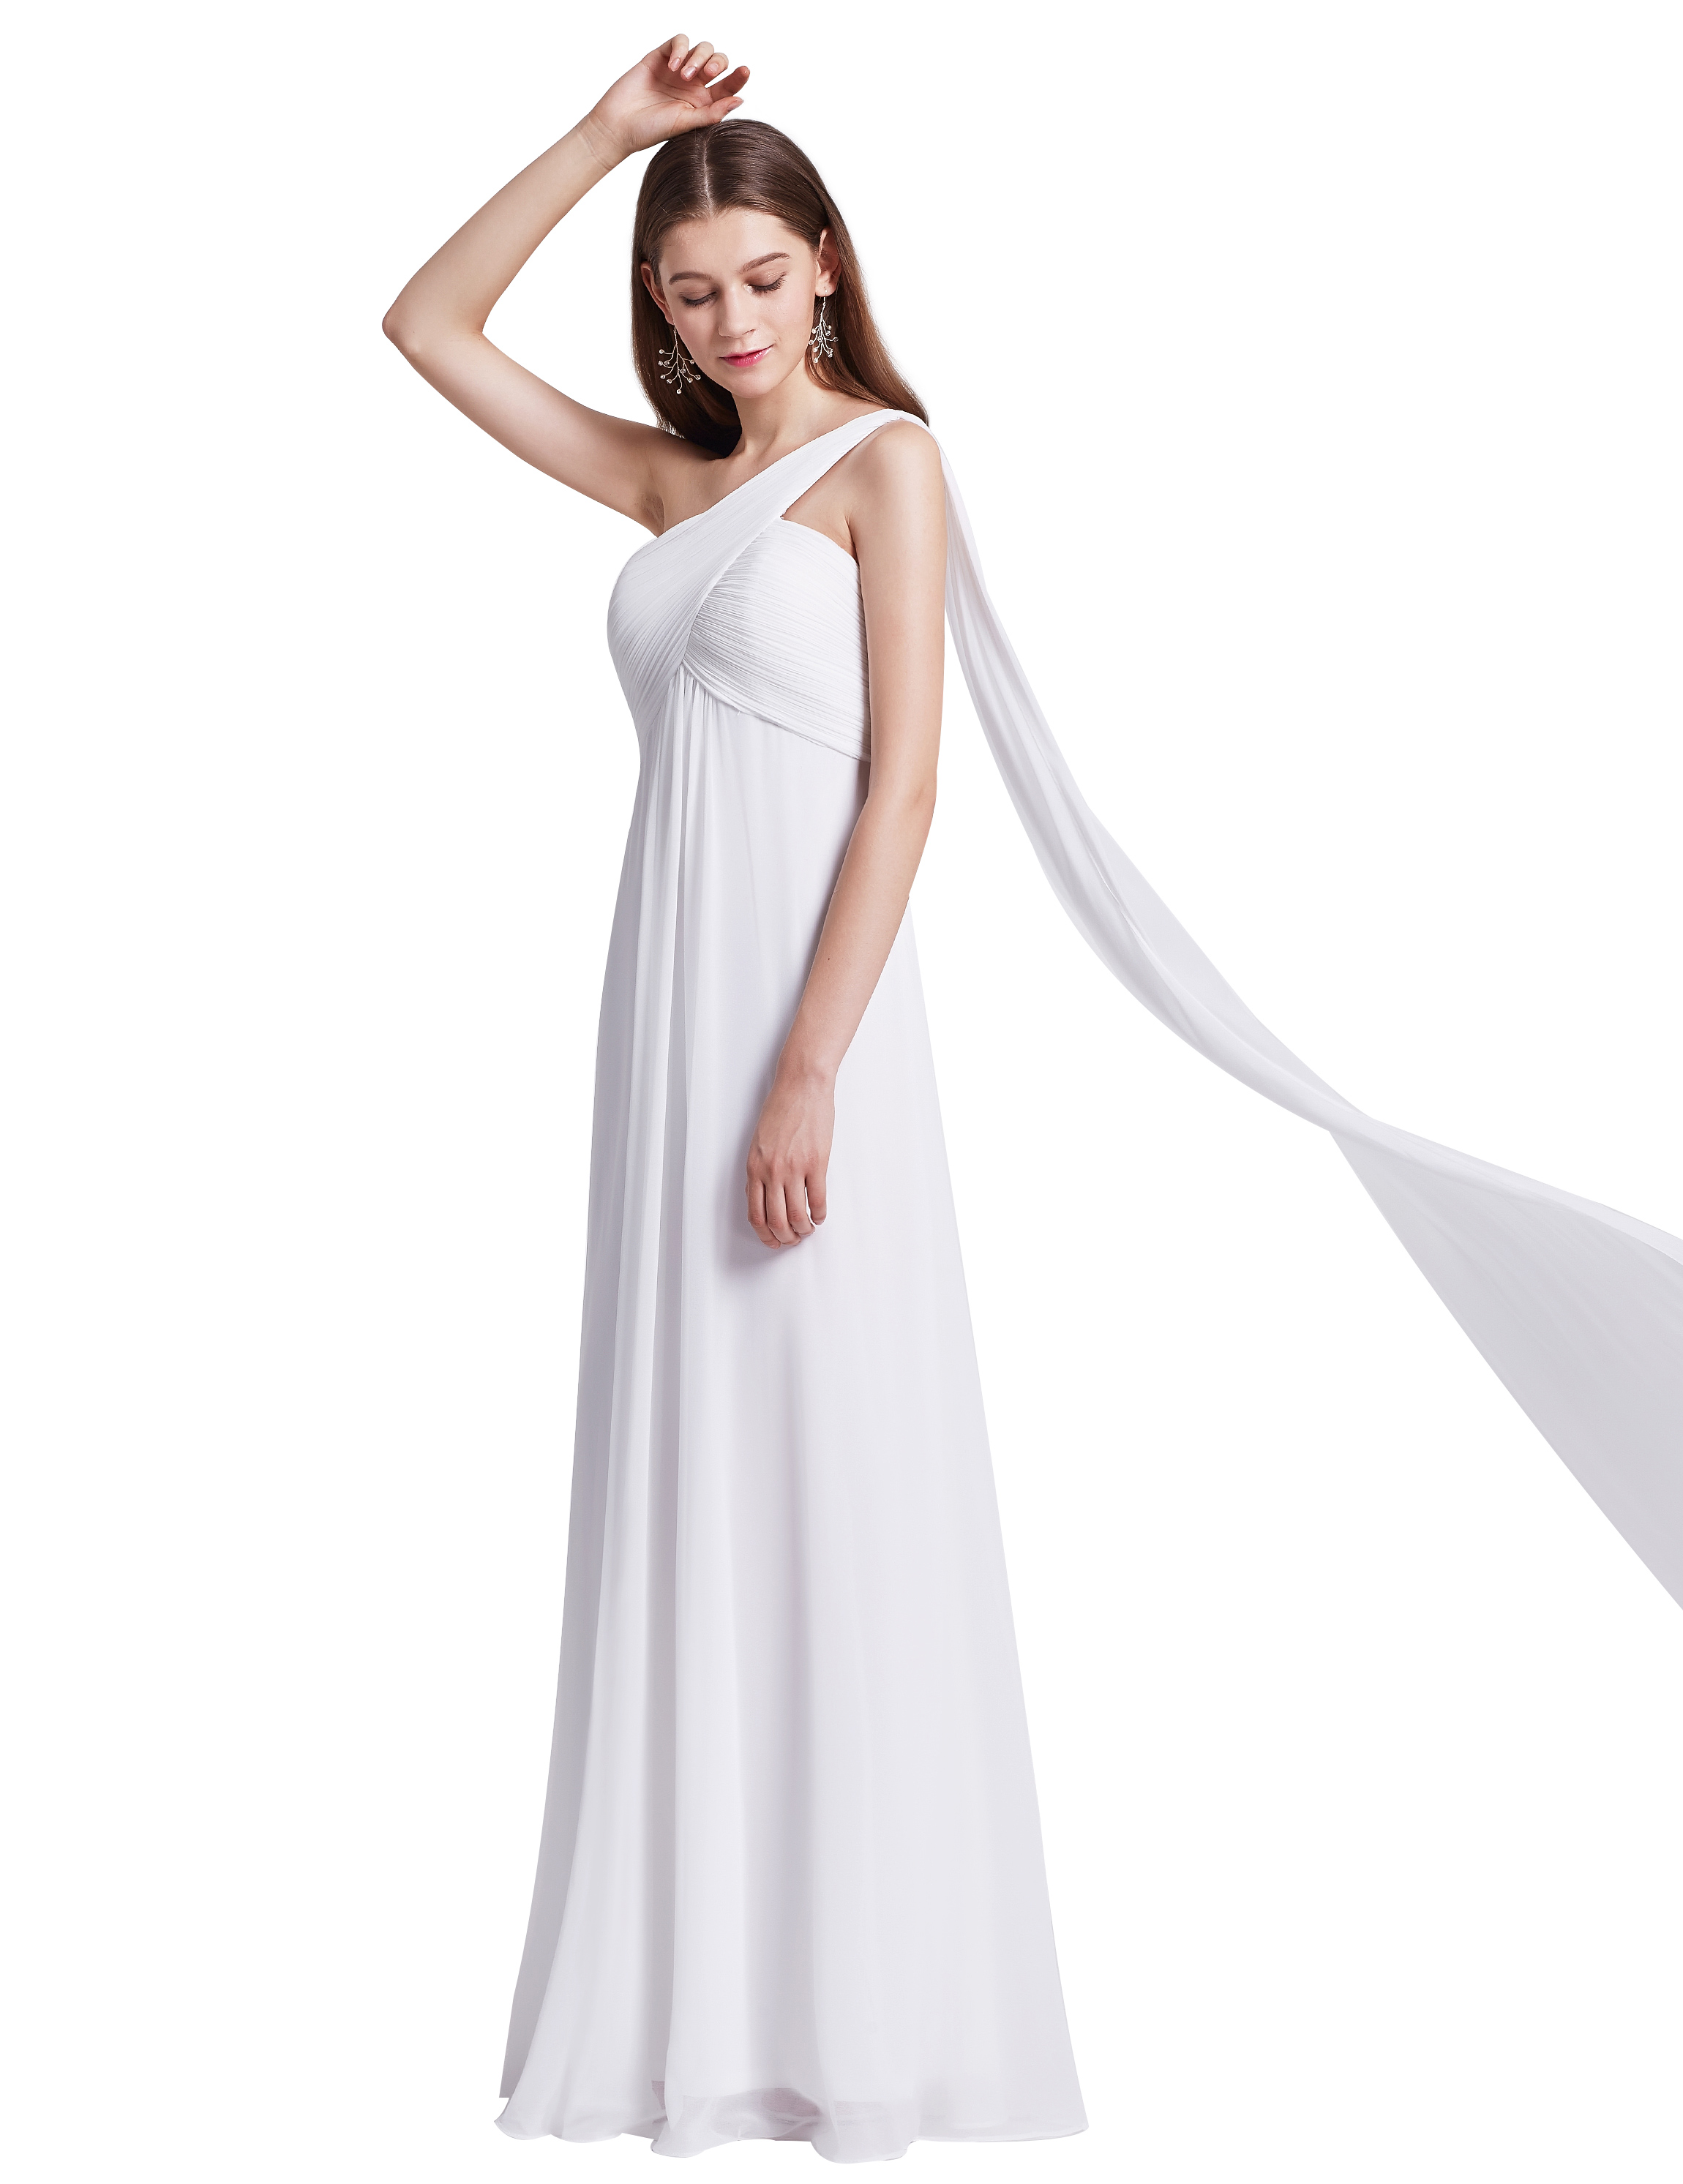 One Shoulder Long Prom Dresses Evening Bridesmaid Party Gowns 09816 ...